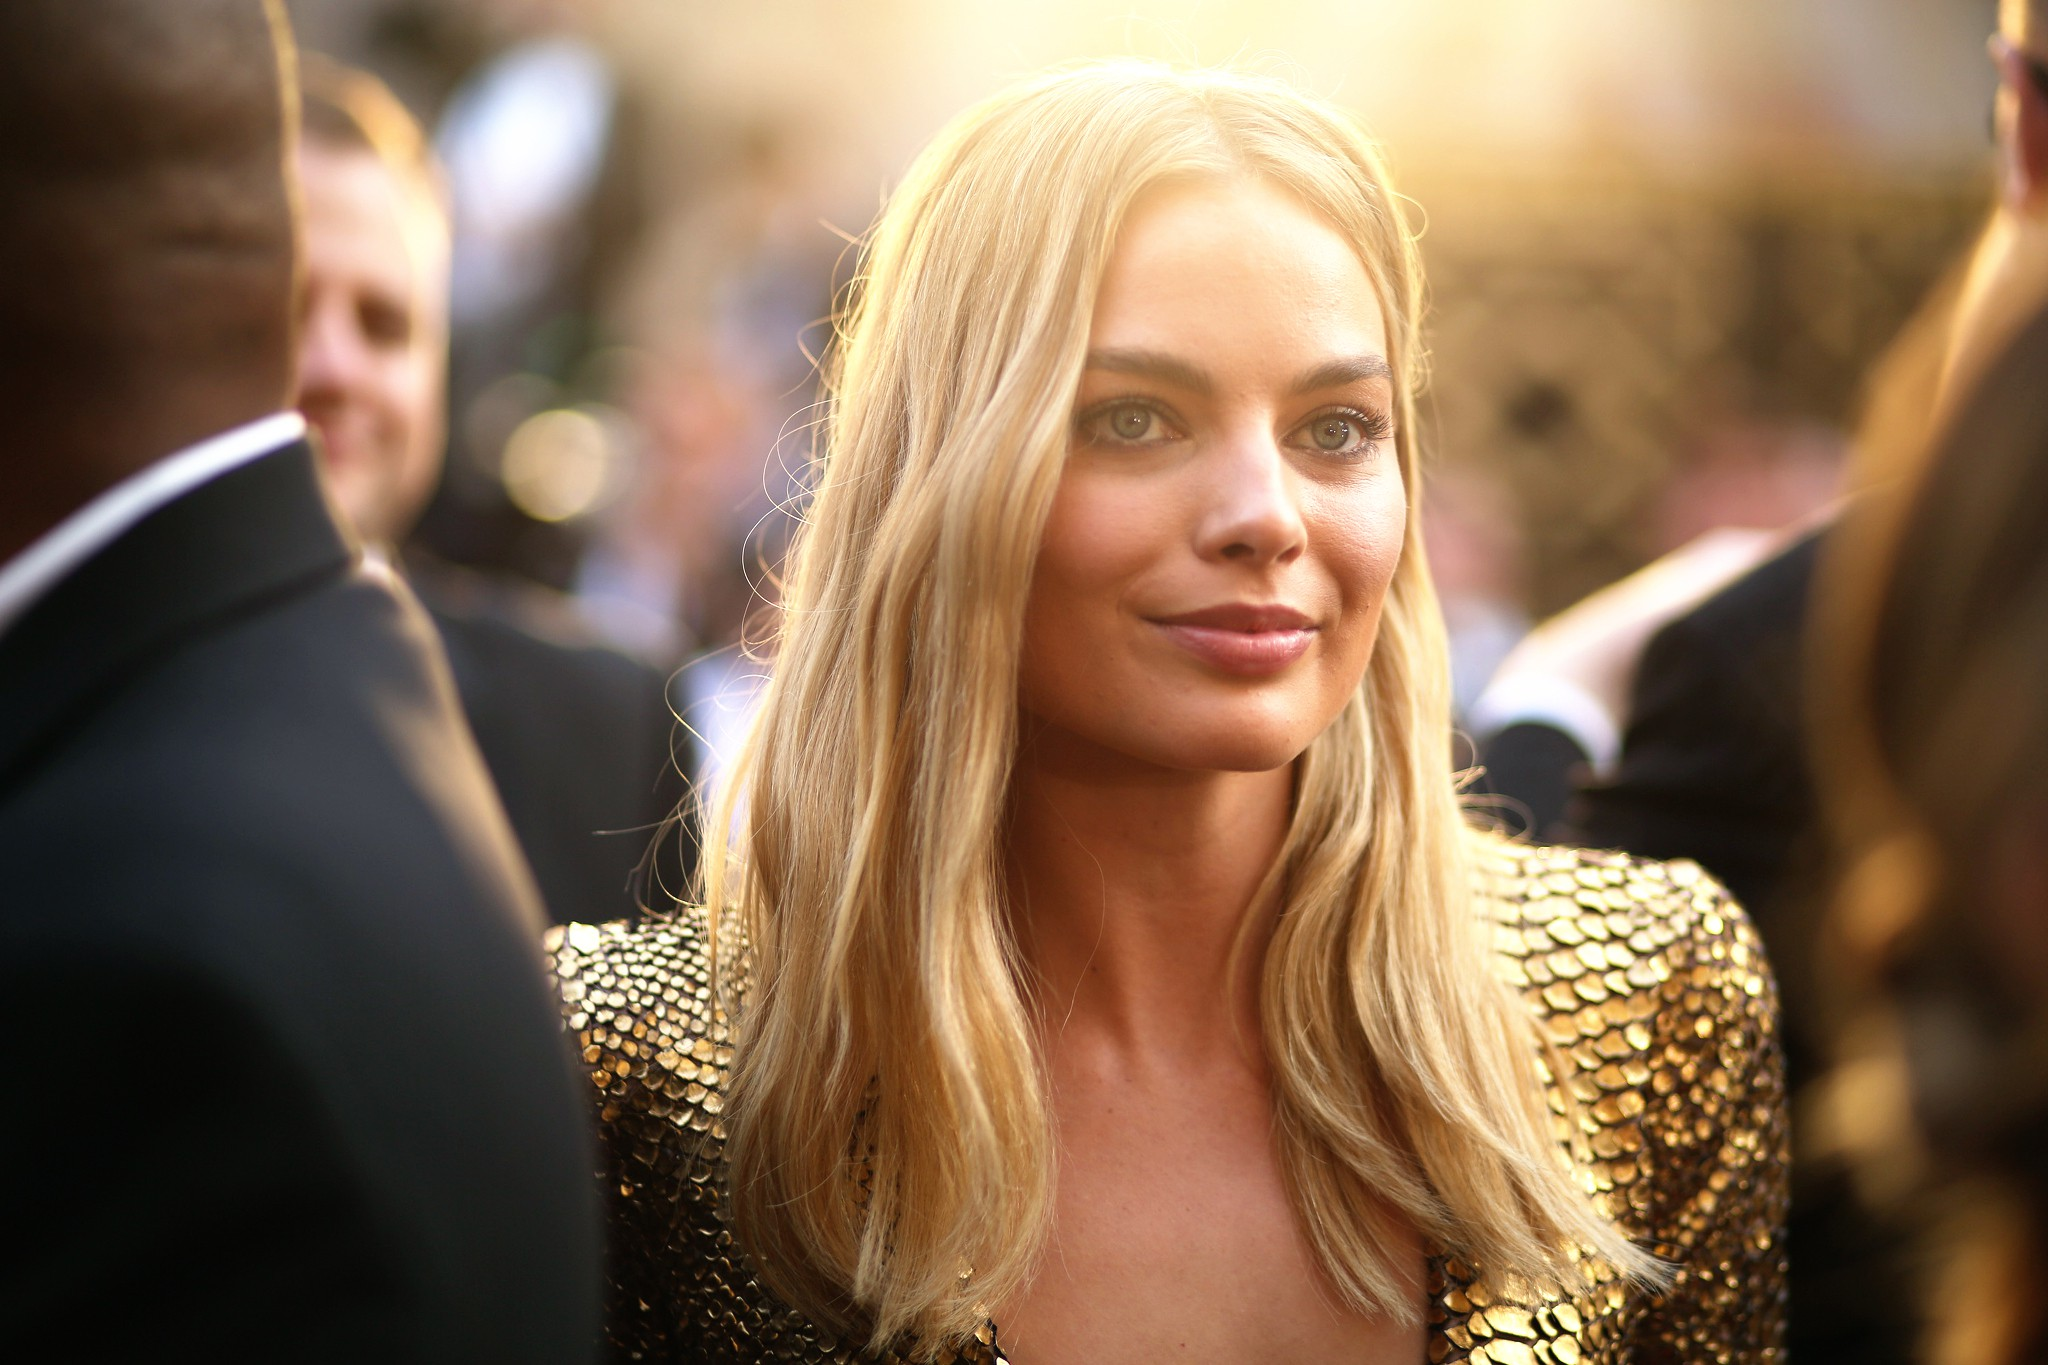 bd1a5f7591 Download Margot Robbie Terminal Desktop Wallpaper 859 2048x1365 px ...